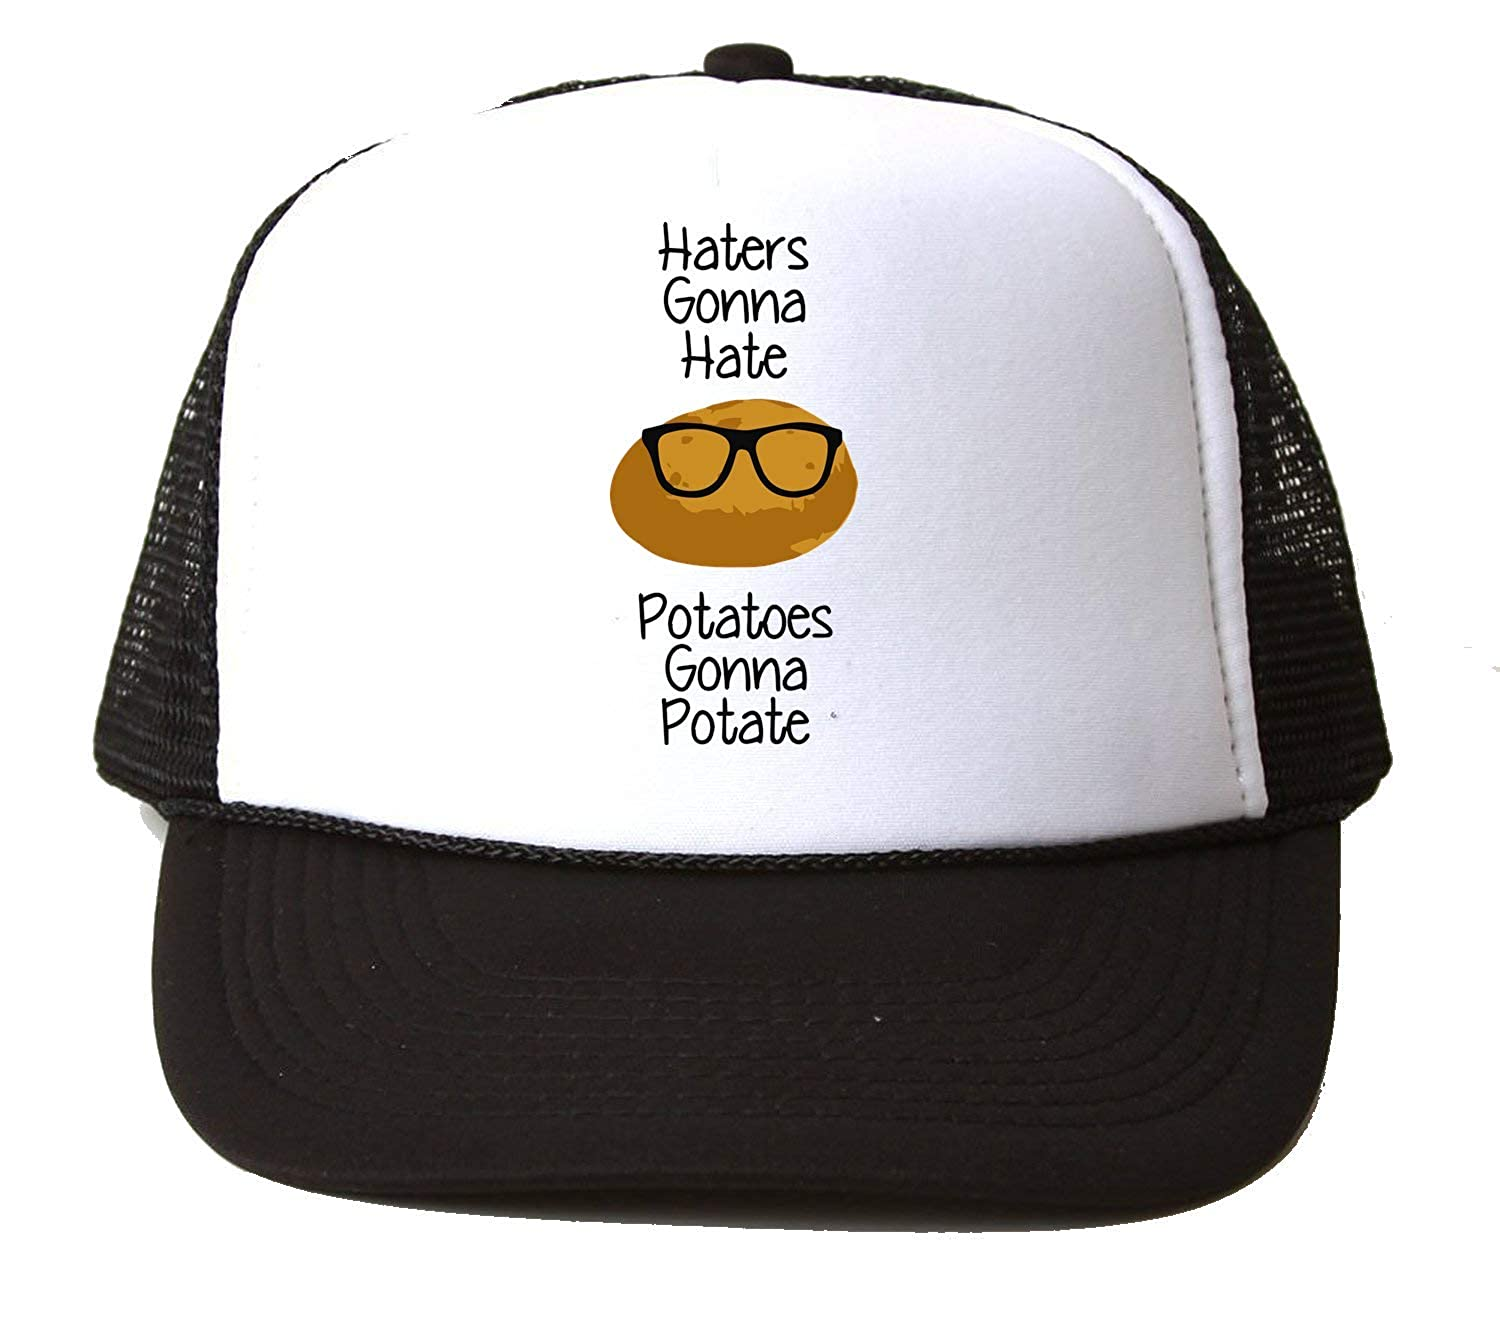 Haters Gonna Hate Potatoes Gonna Potate Baseball Cap Hat Gorra ...